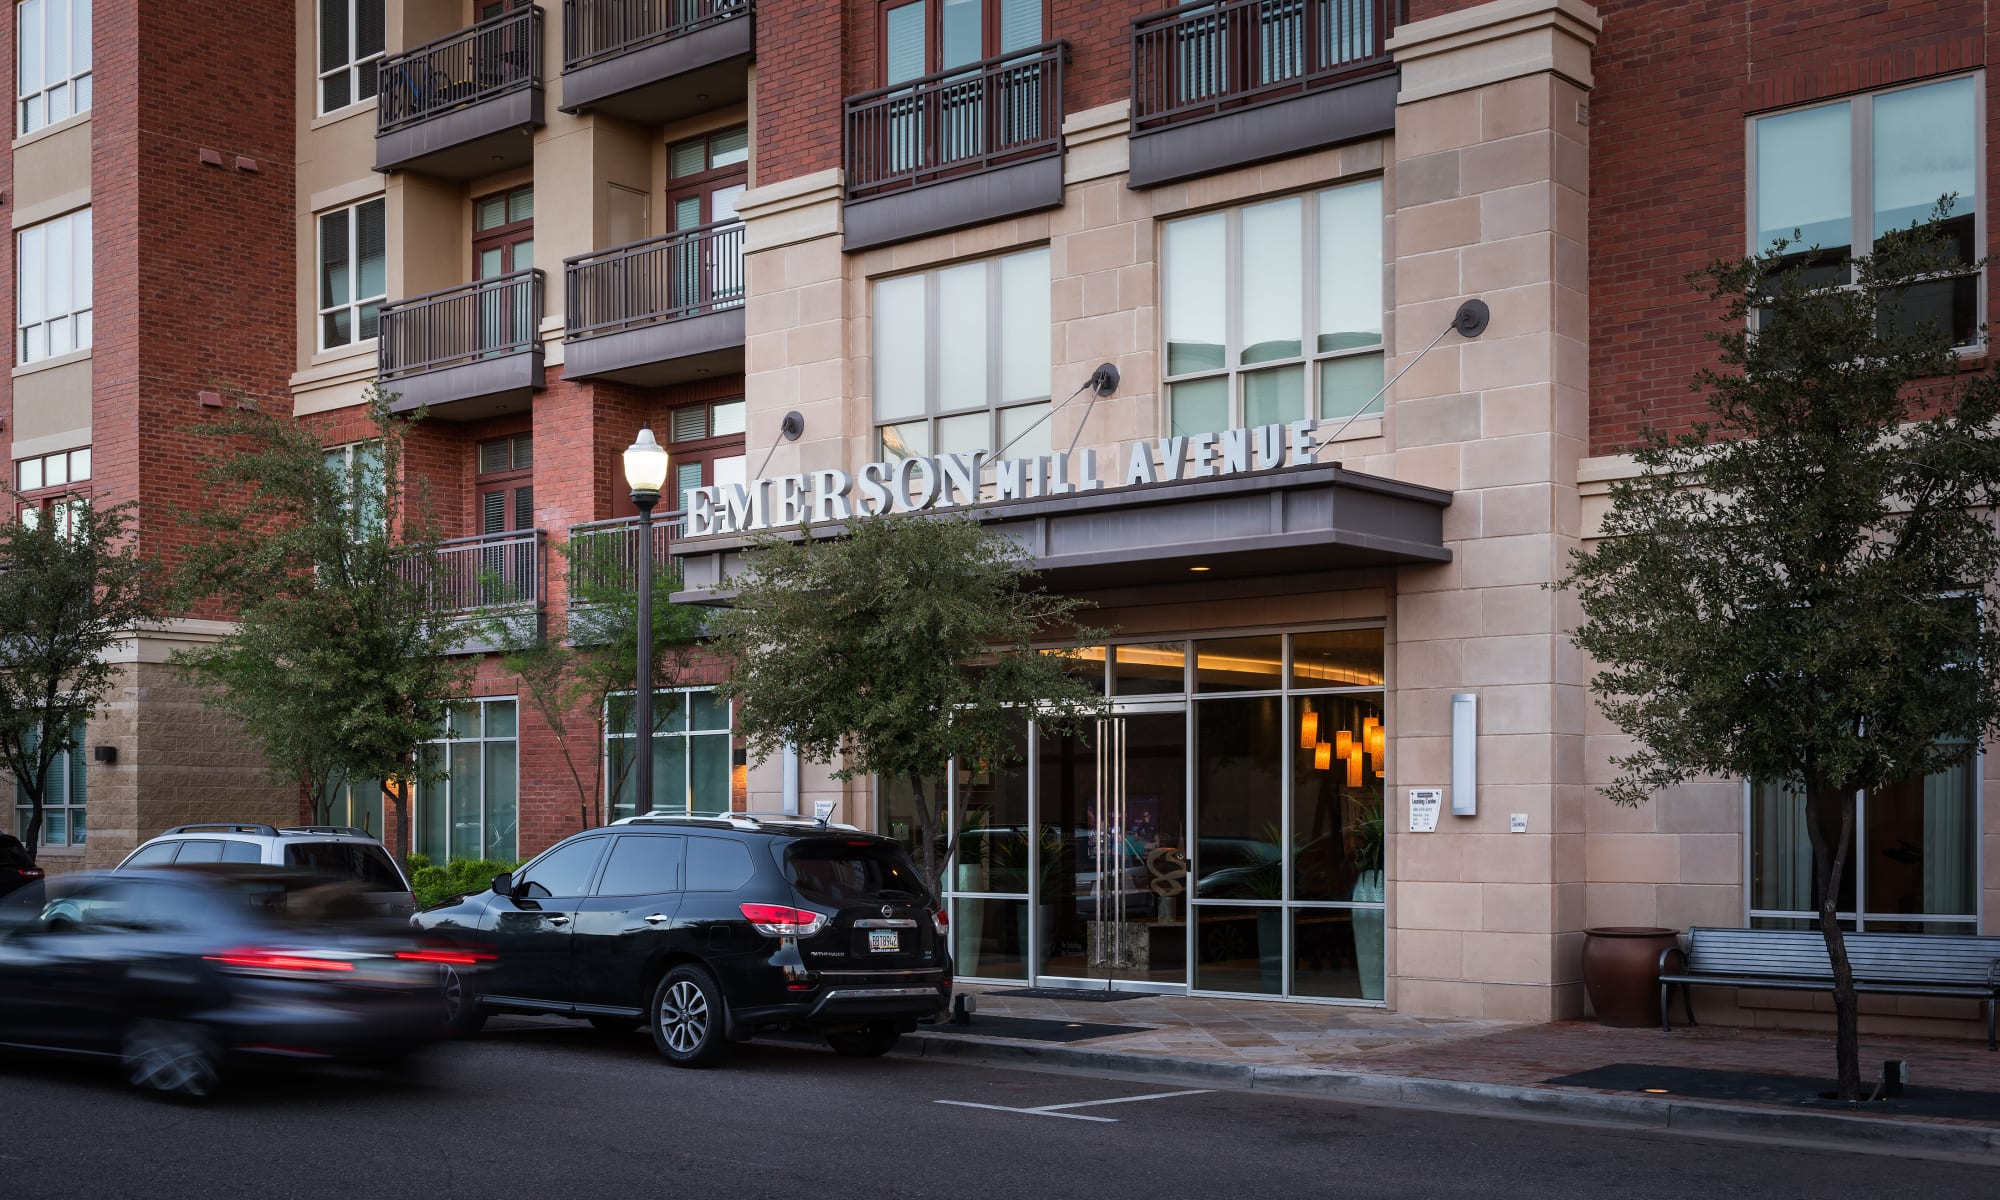 Luxury Apartments at Emerson Mill Avenue in Tempe, Arizona